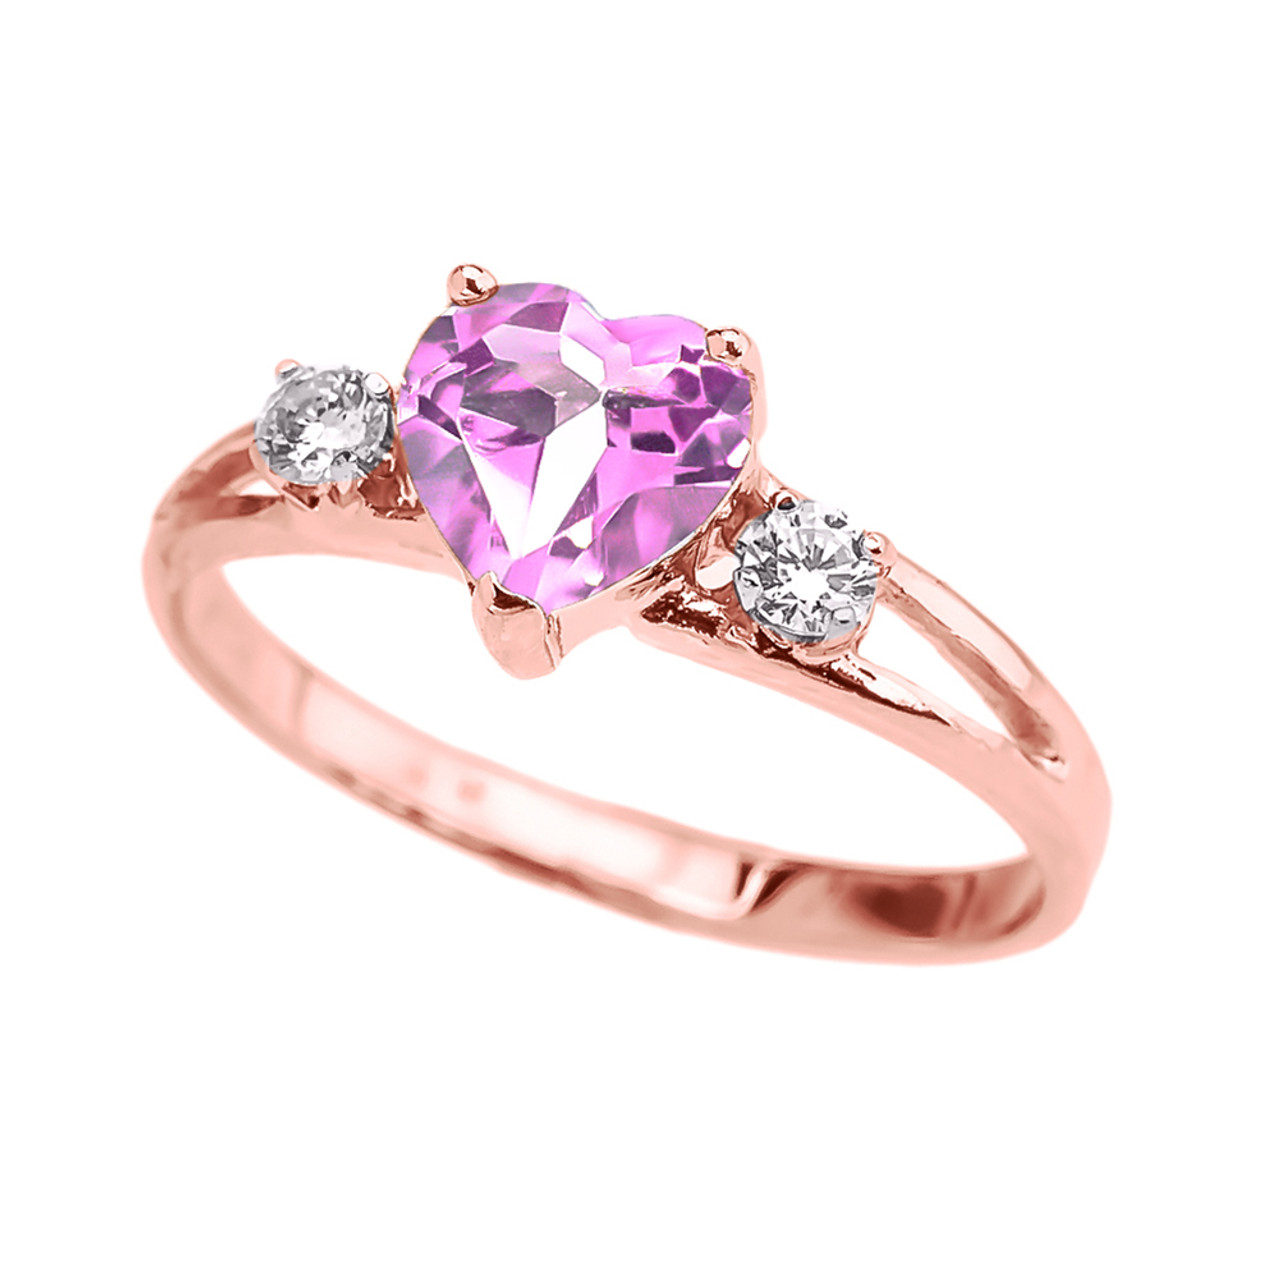 rings caymancode pink wedding diamond heart band